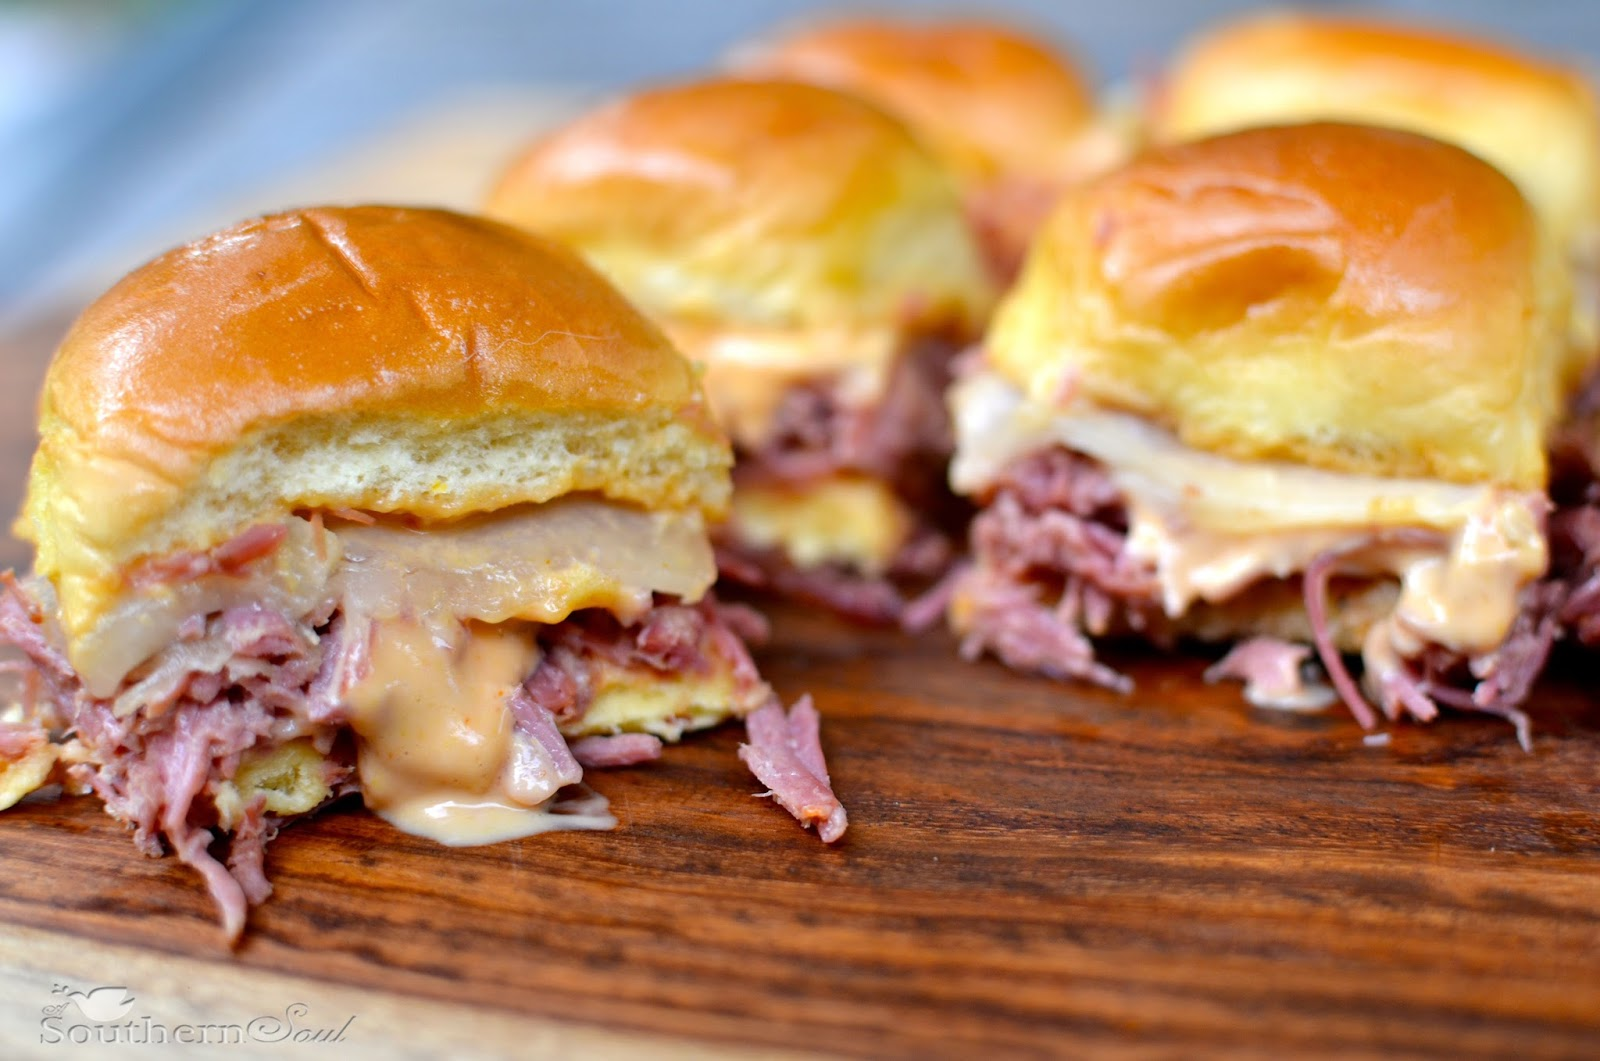 Slow cooker corned beef reuben sliders a southern soul asouthern soulspot forumfinder